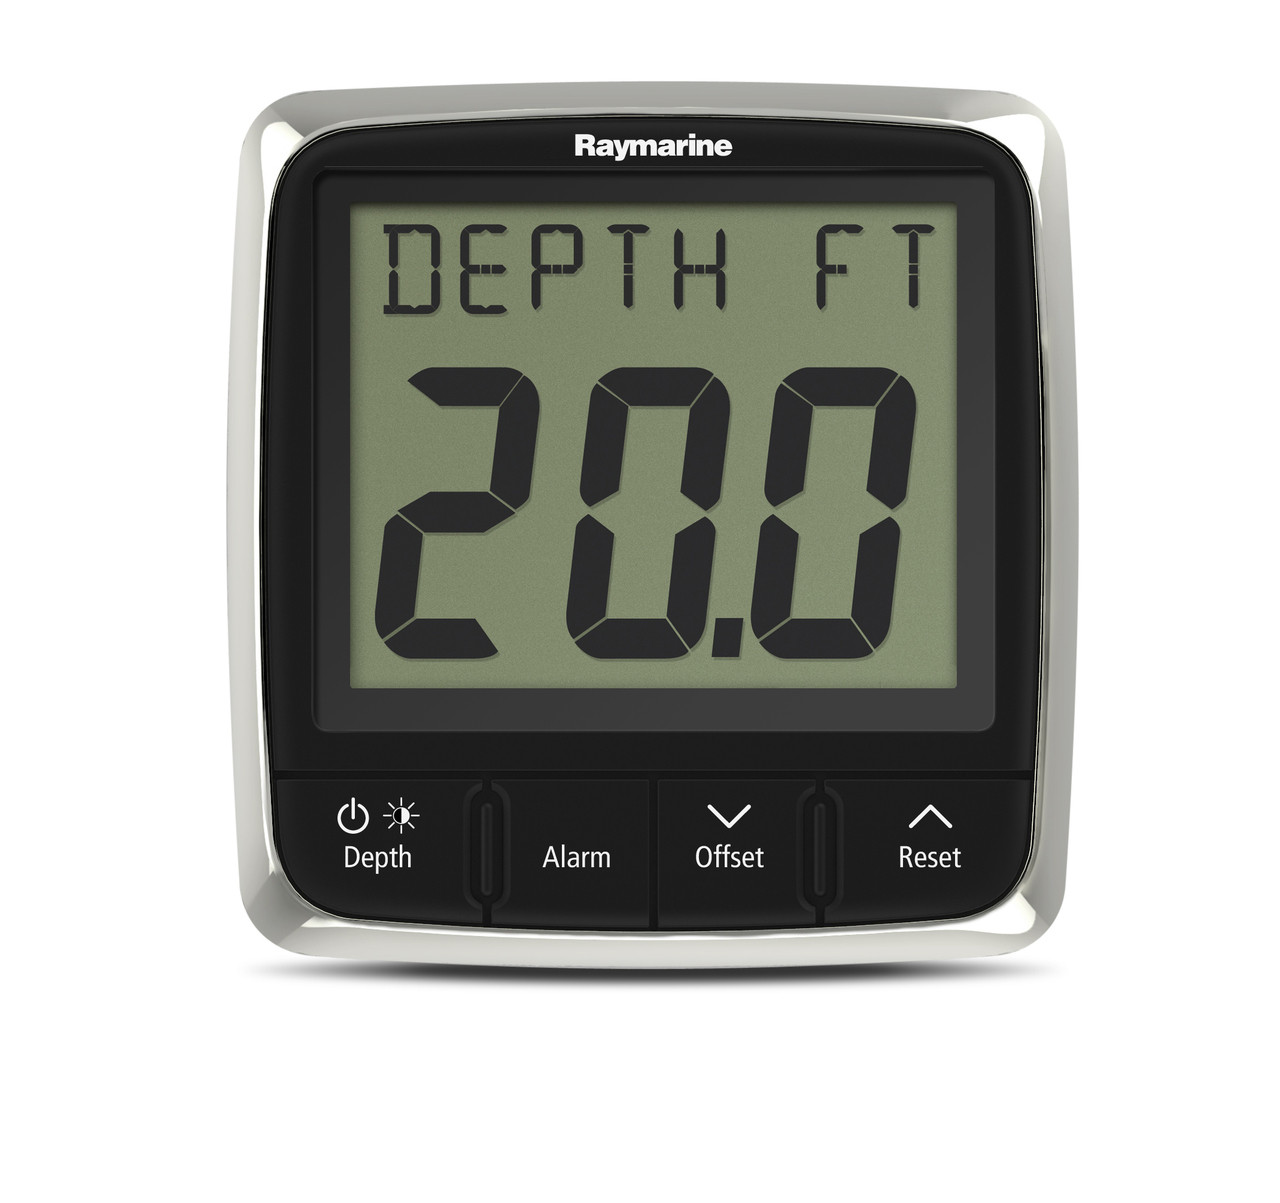 Raymarine i50 Depth Display Front View